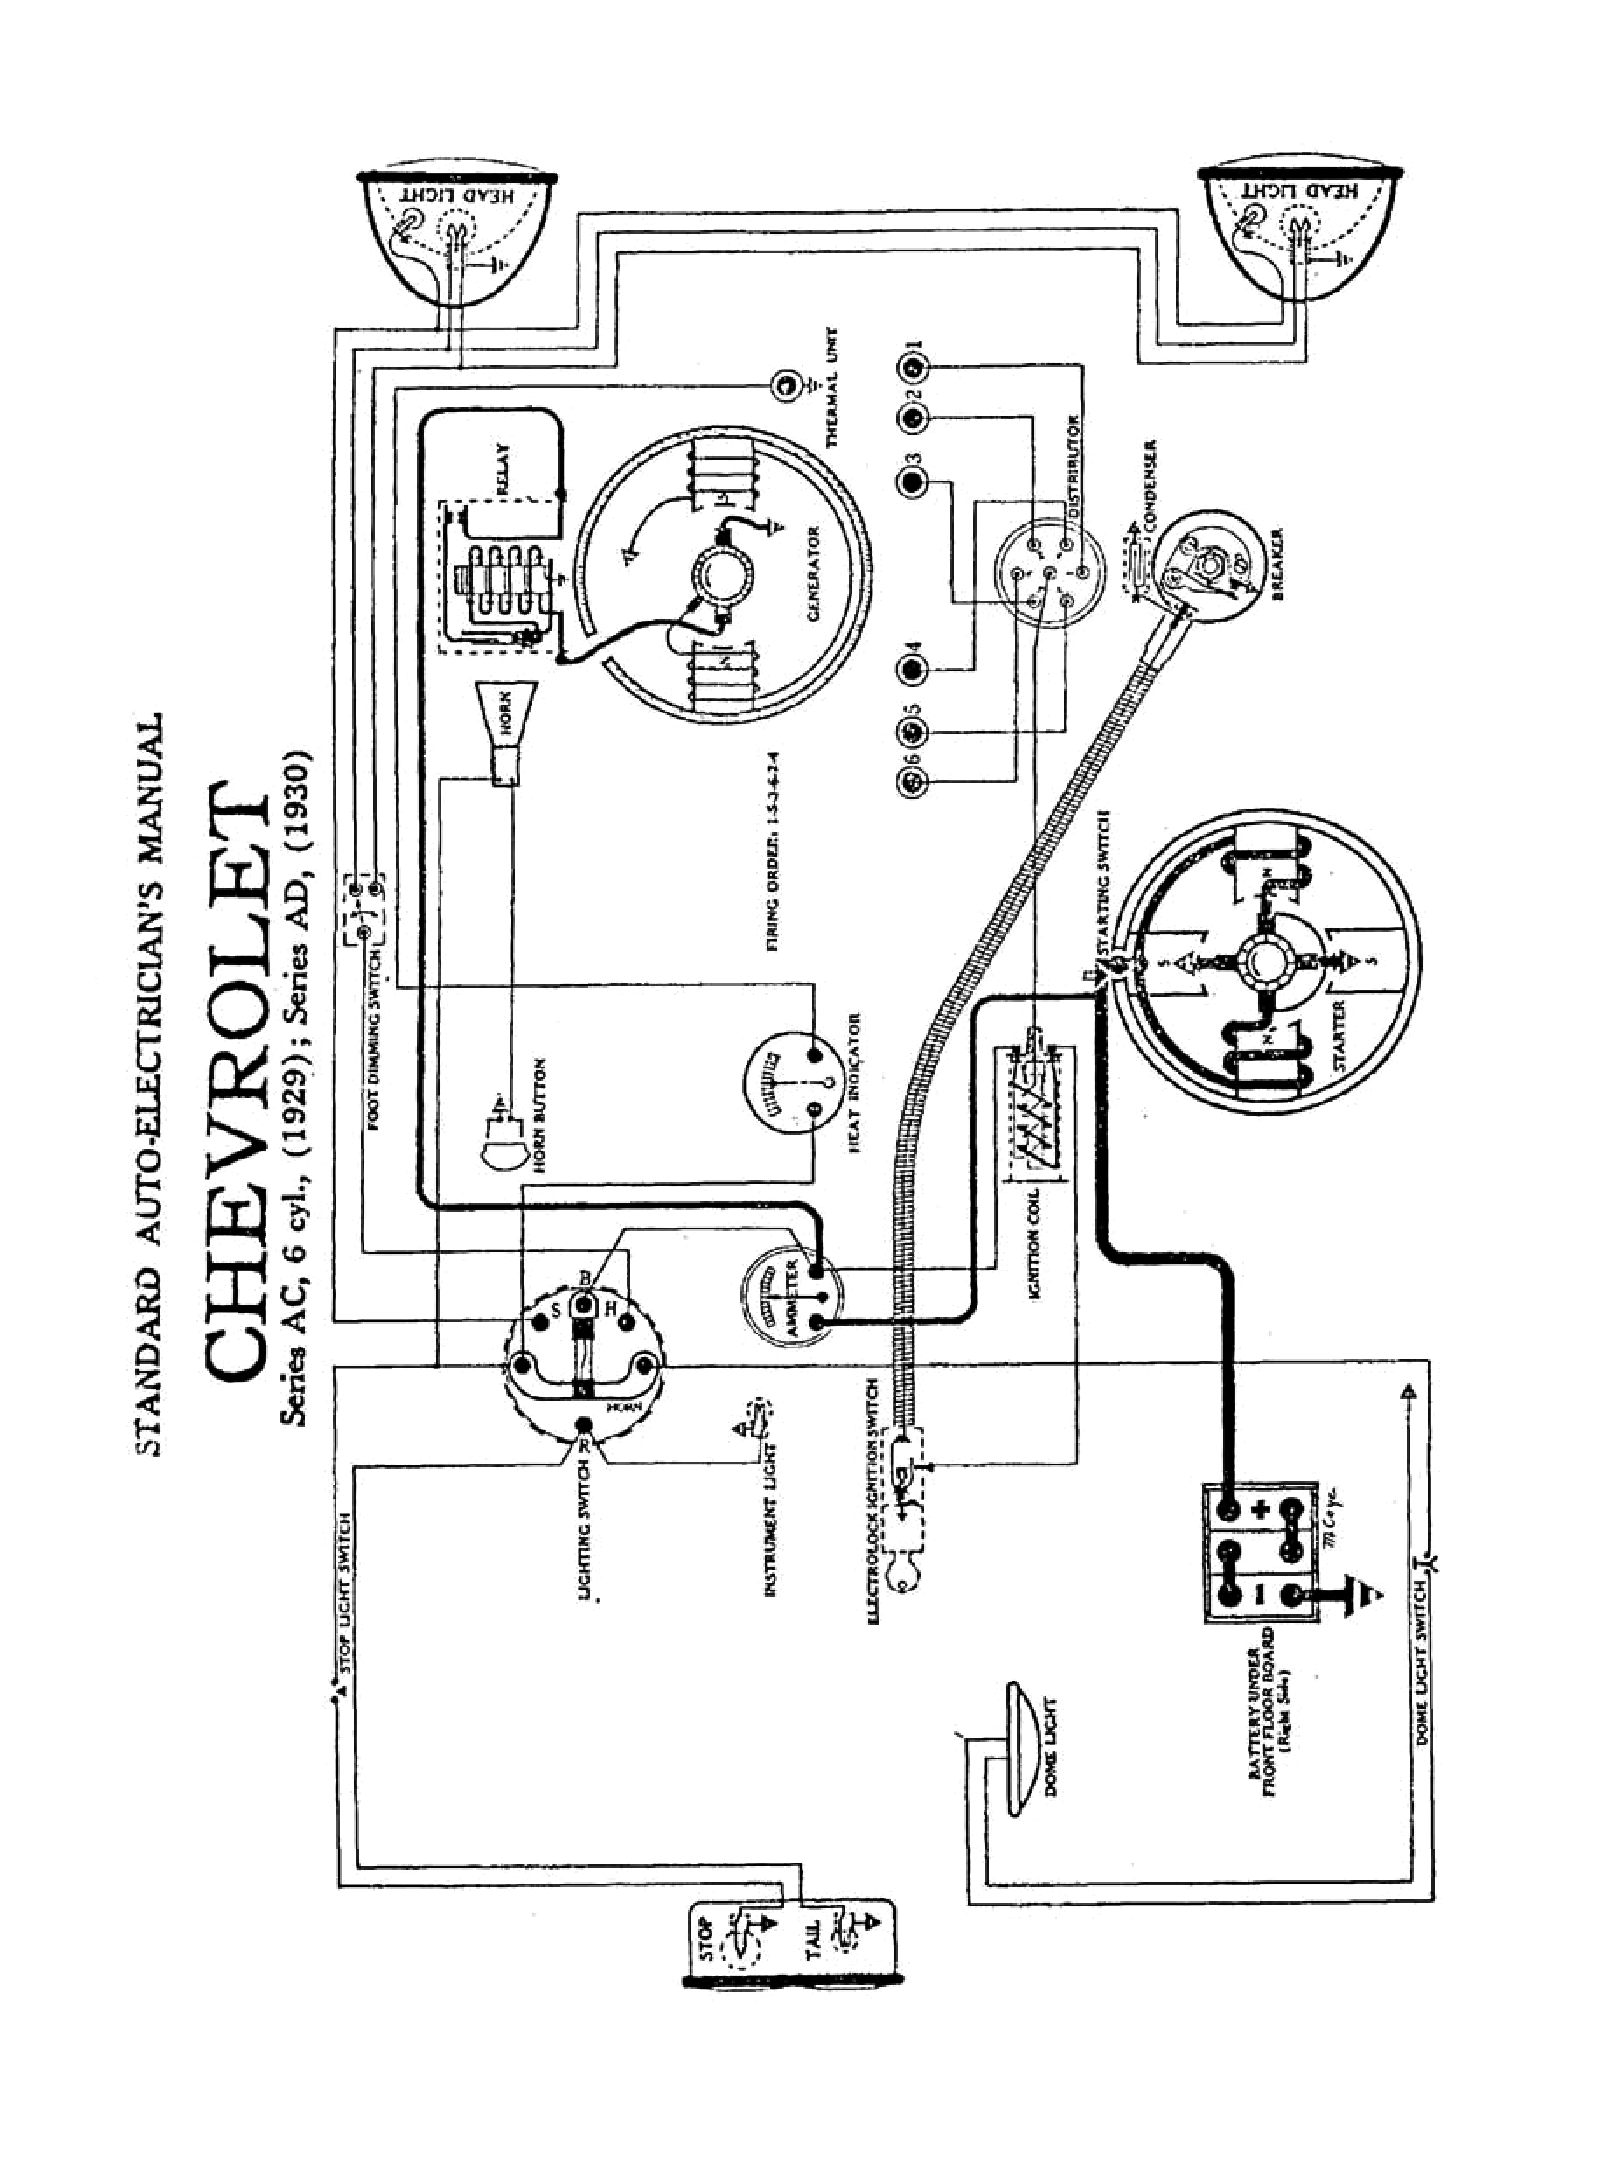 1931 Chevrolet Wiring Diagram on 235 chevy 6 cylinder engine diagram